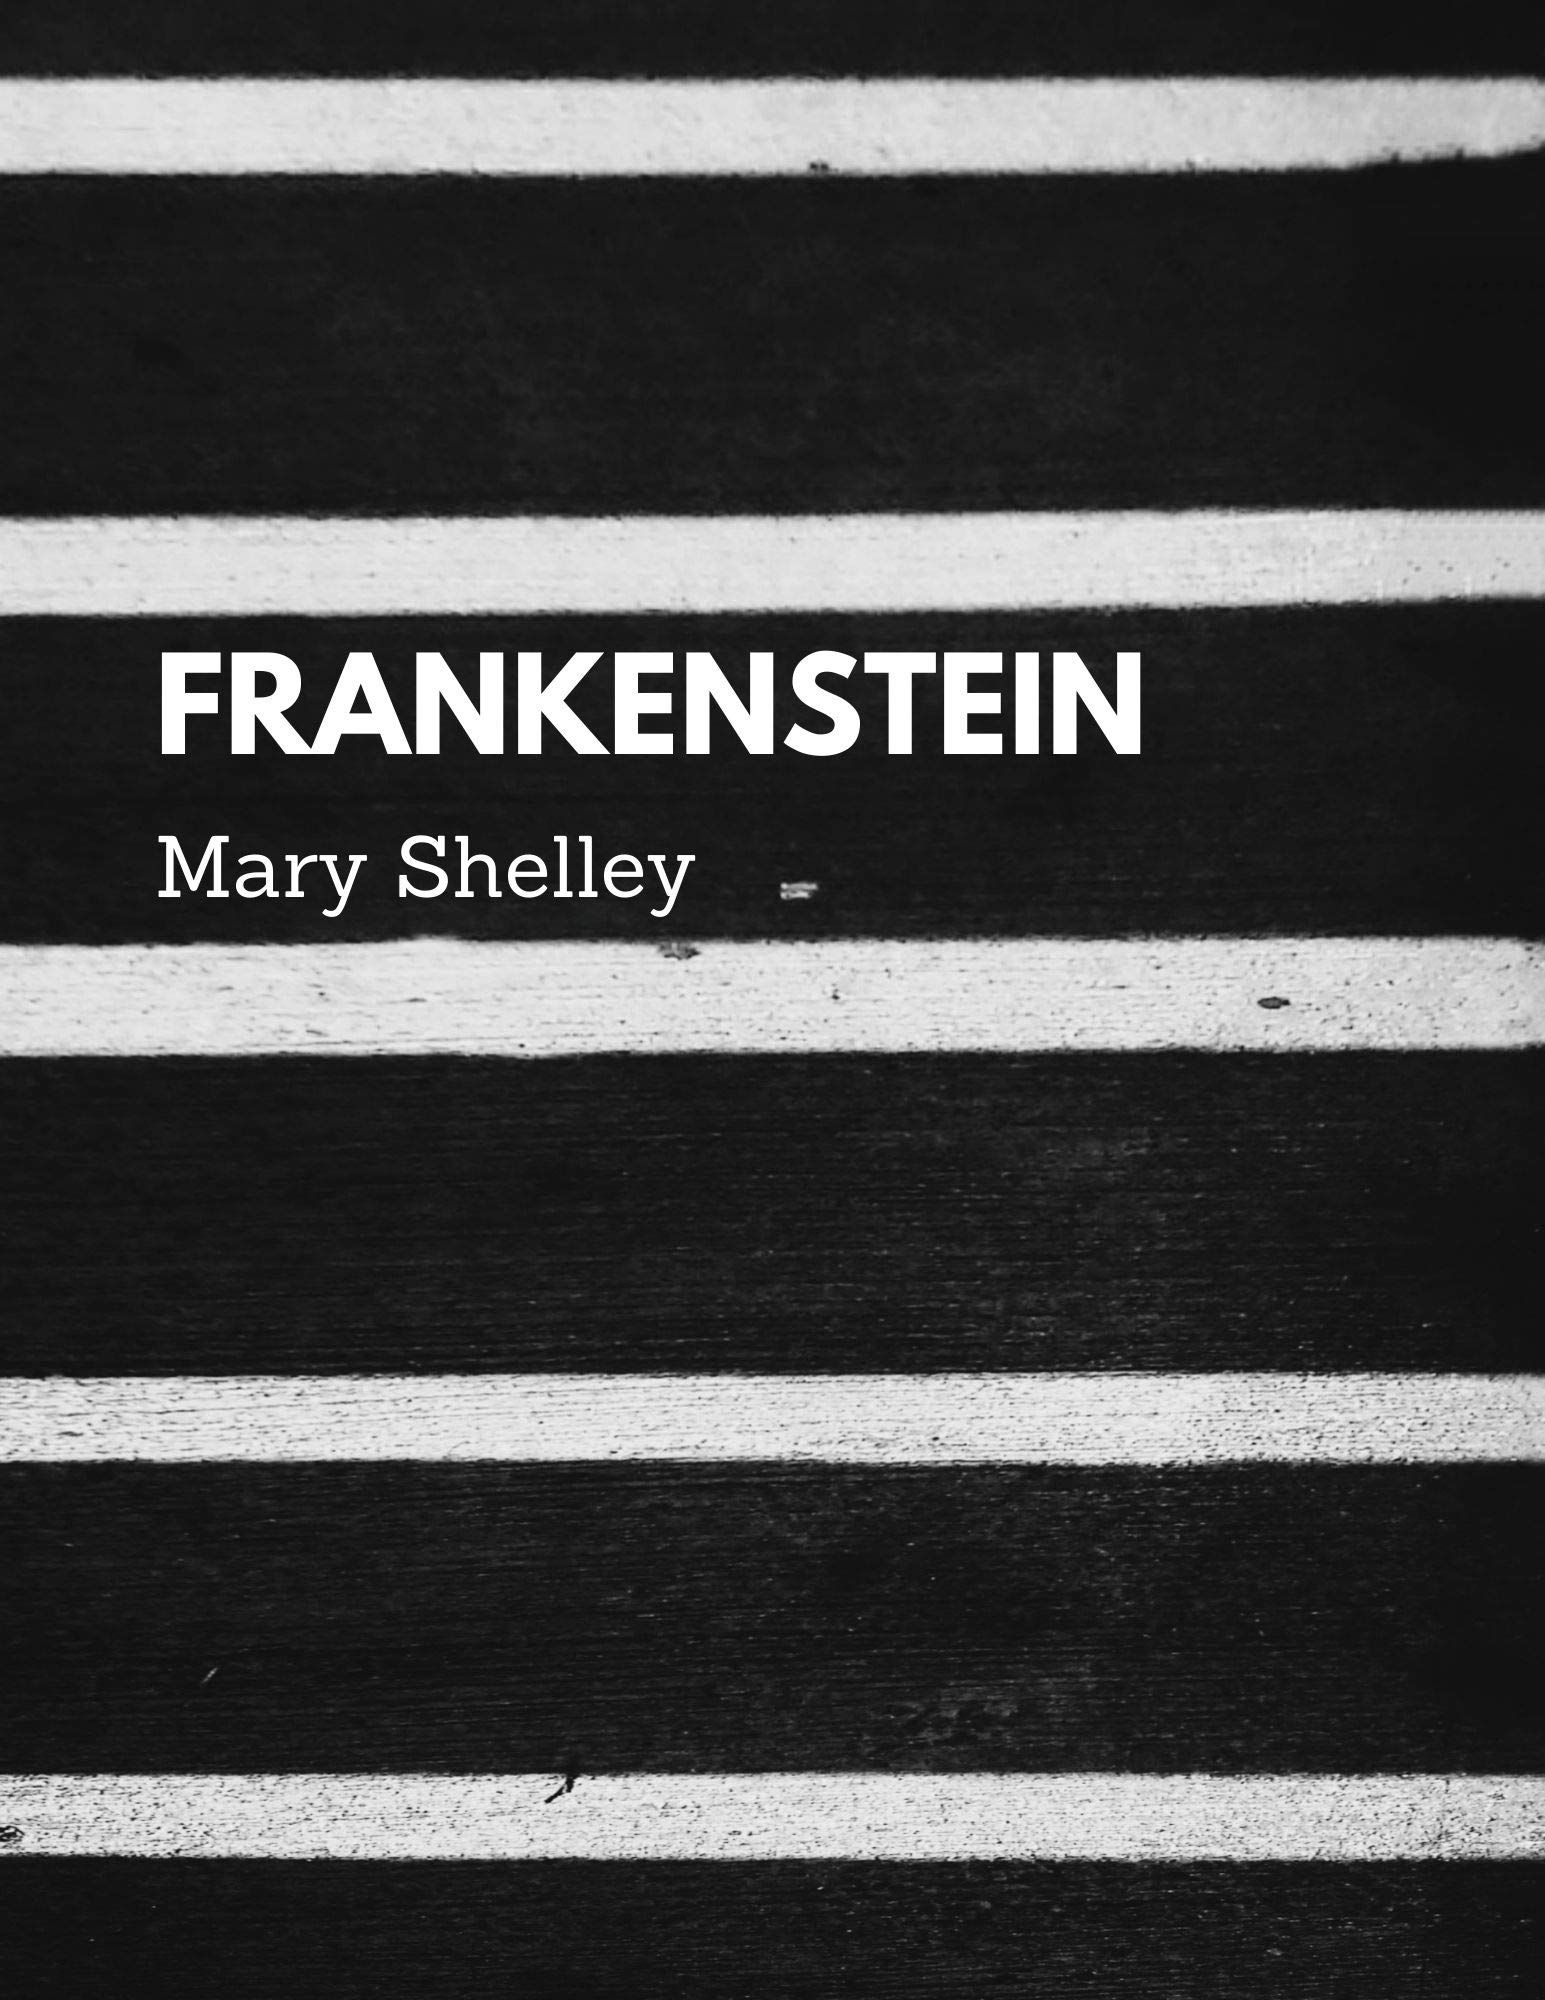 Frankenstein by Mary Shelley (Unabridged: Yes / Annotated: No)